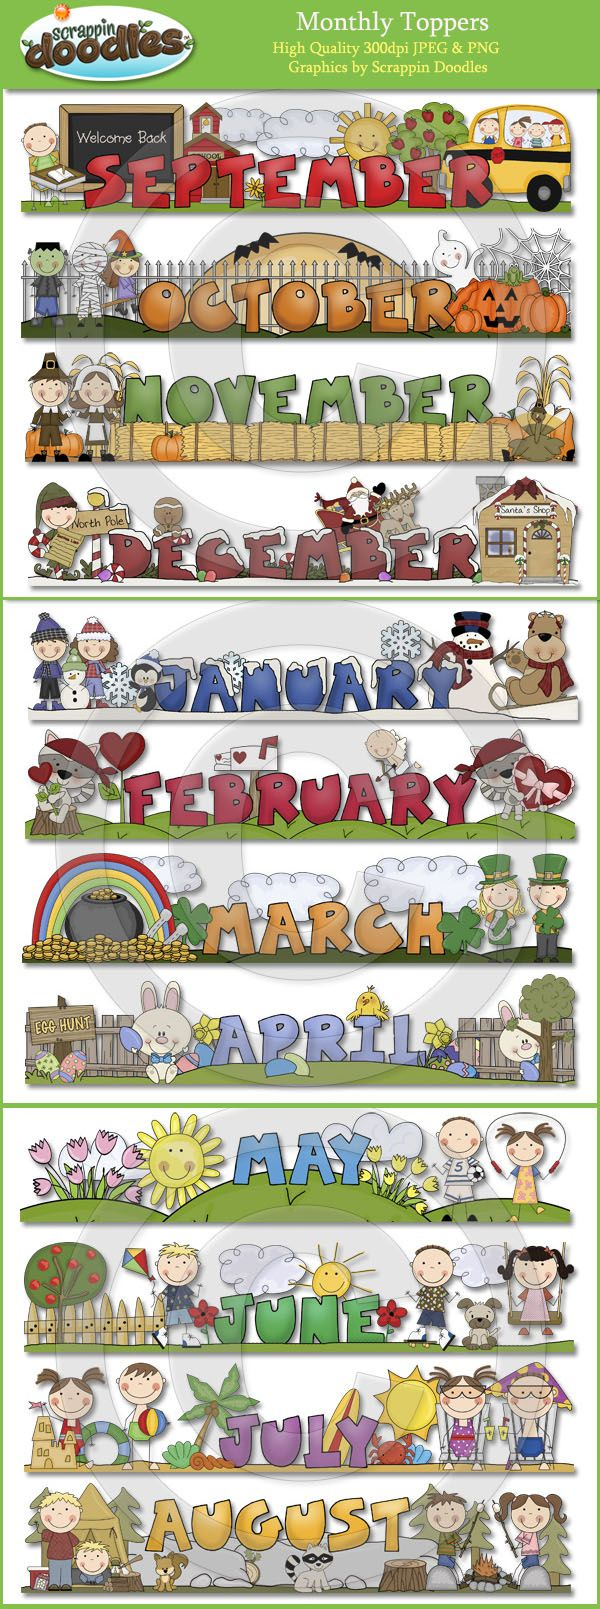 December Calendar Art Kindergarten : Images about preschool calendar printables on